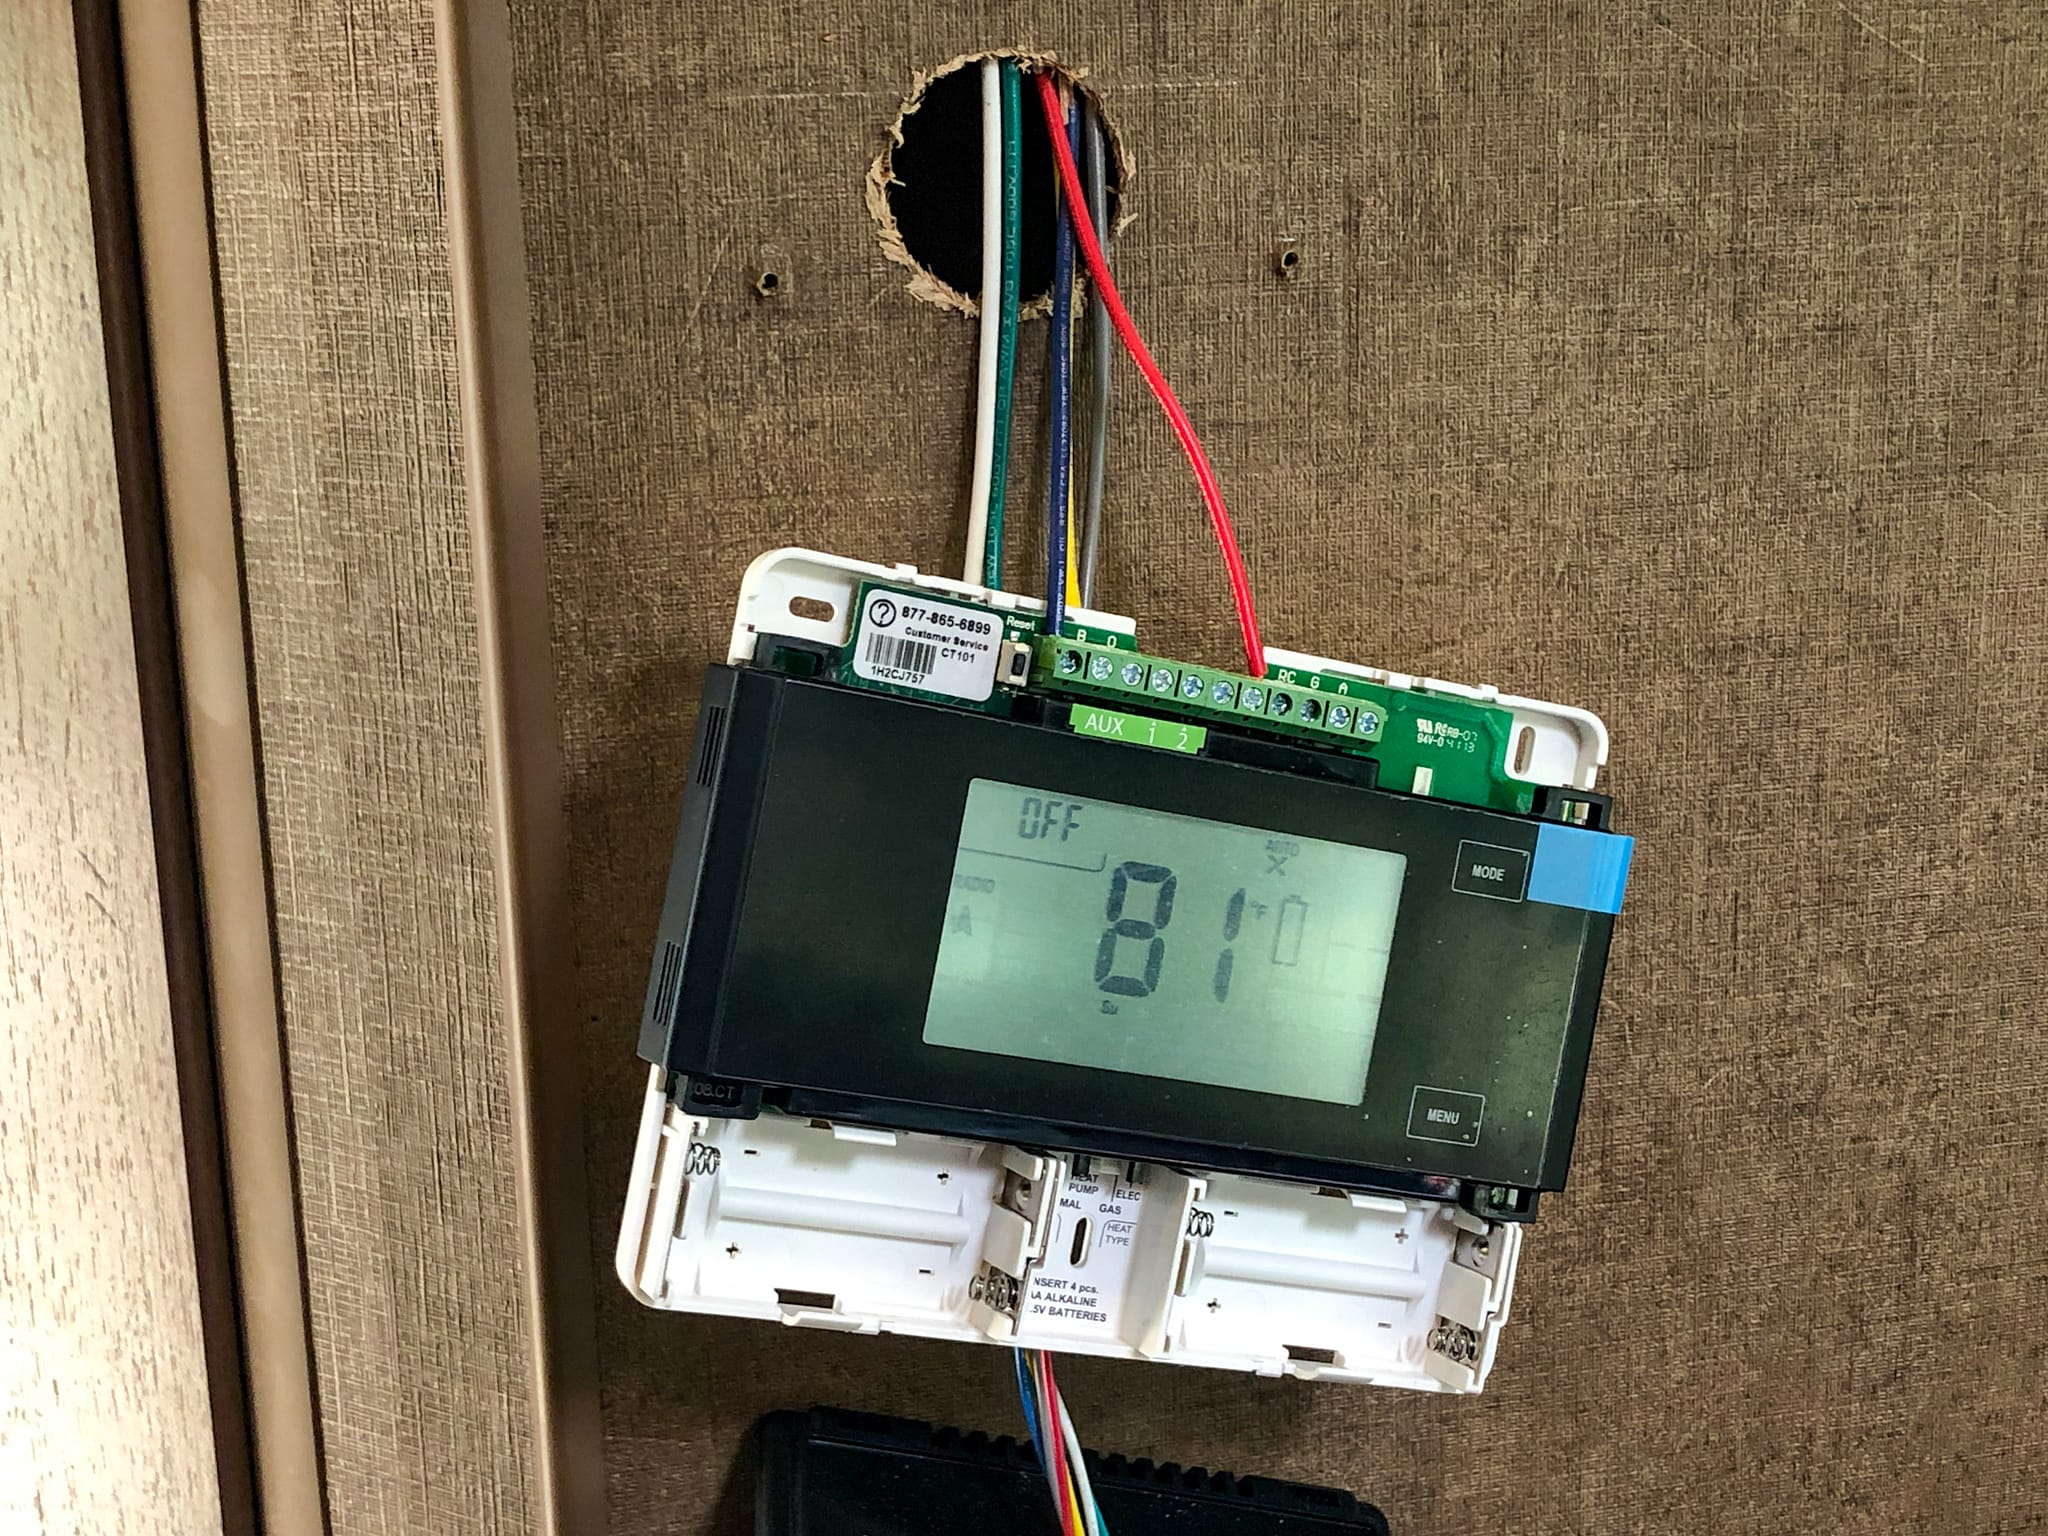 Powering the Thermostat